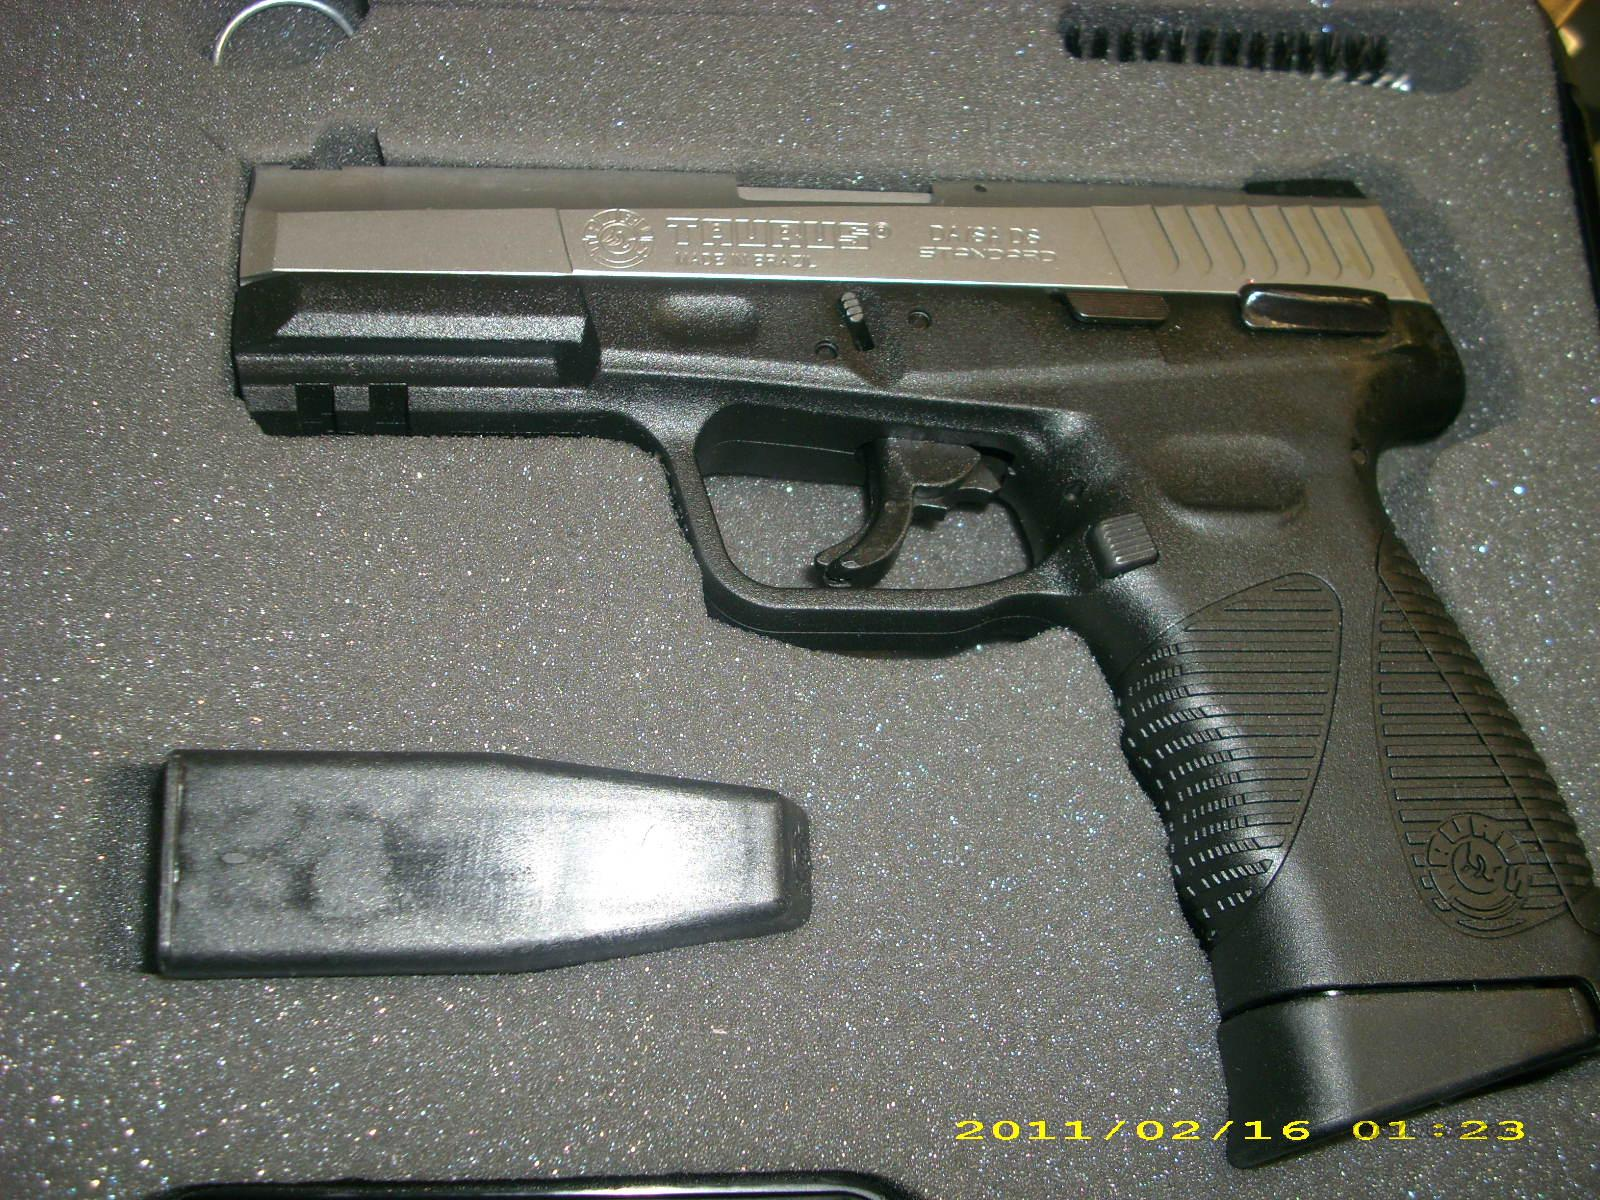 Taurus PT 24/7 in Stainless or Blued 9mm   Guns > Pistols > Taurus Pistols/Revolvers > Pistols > Polymer Frame